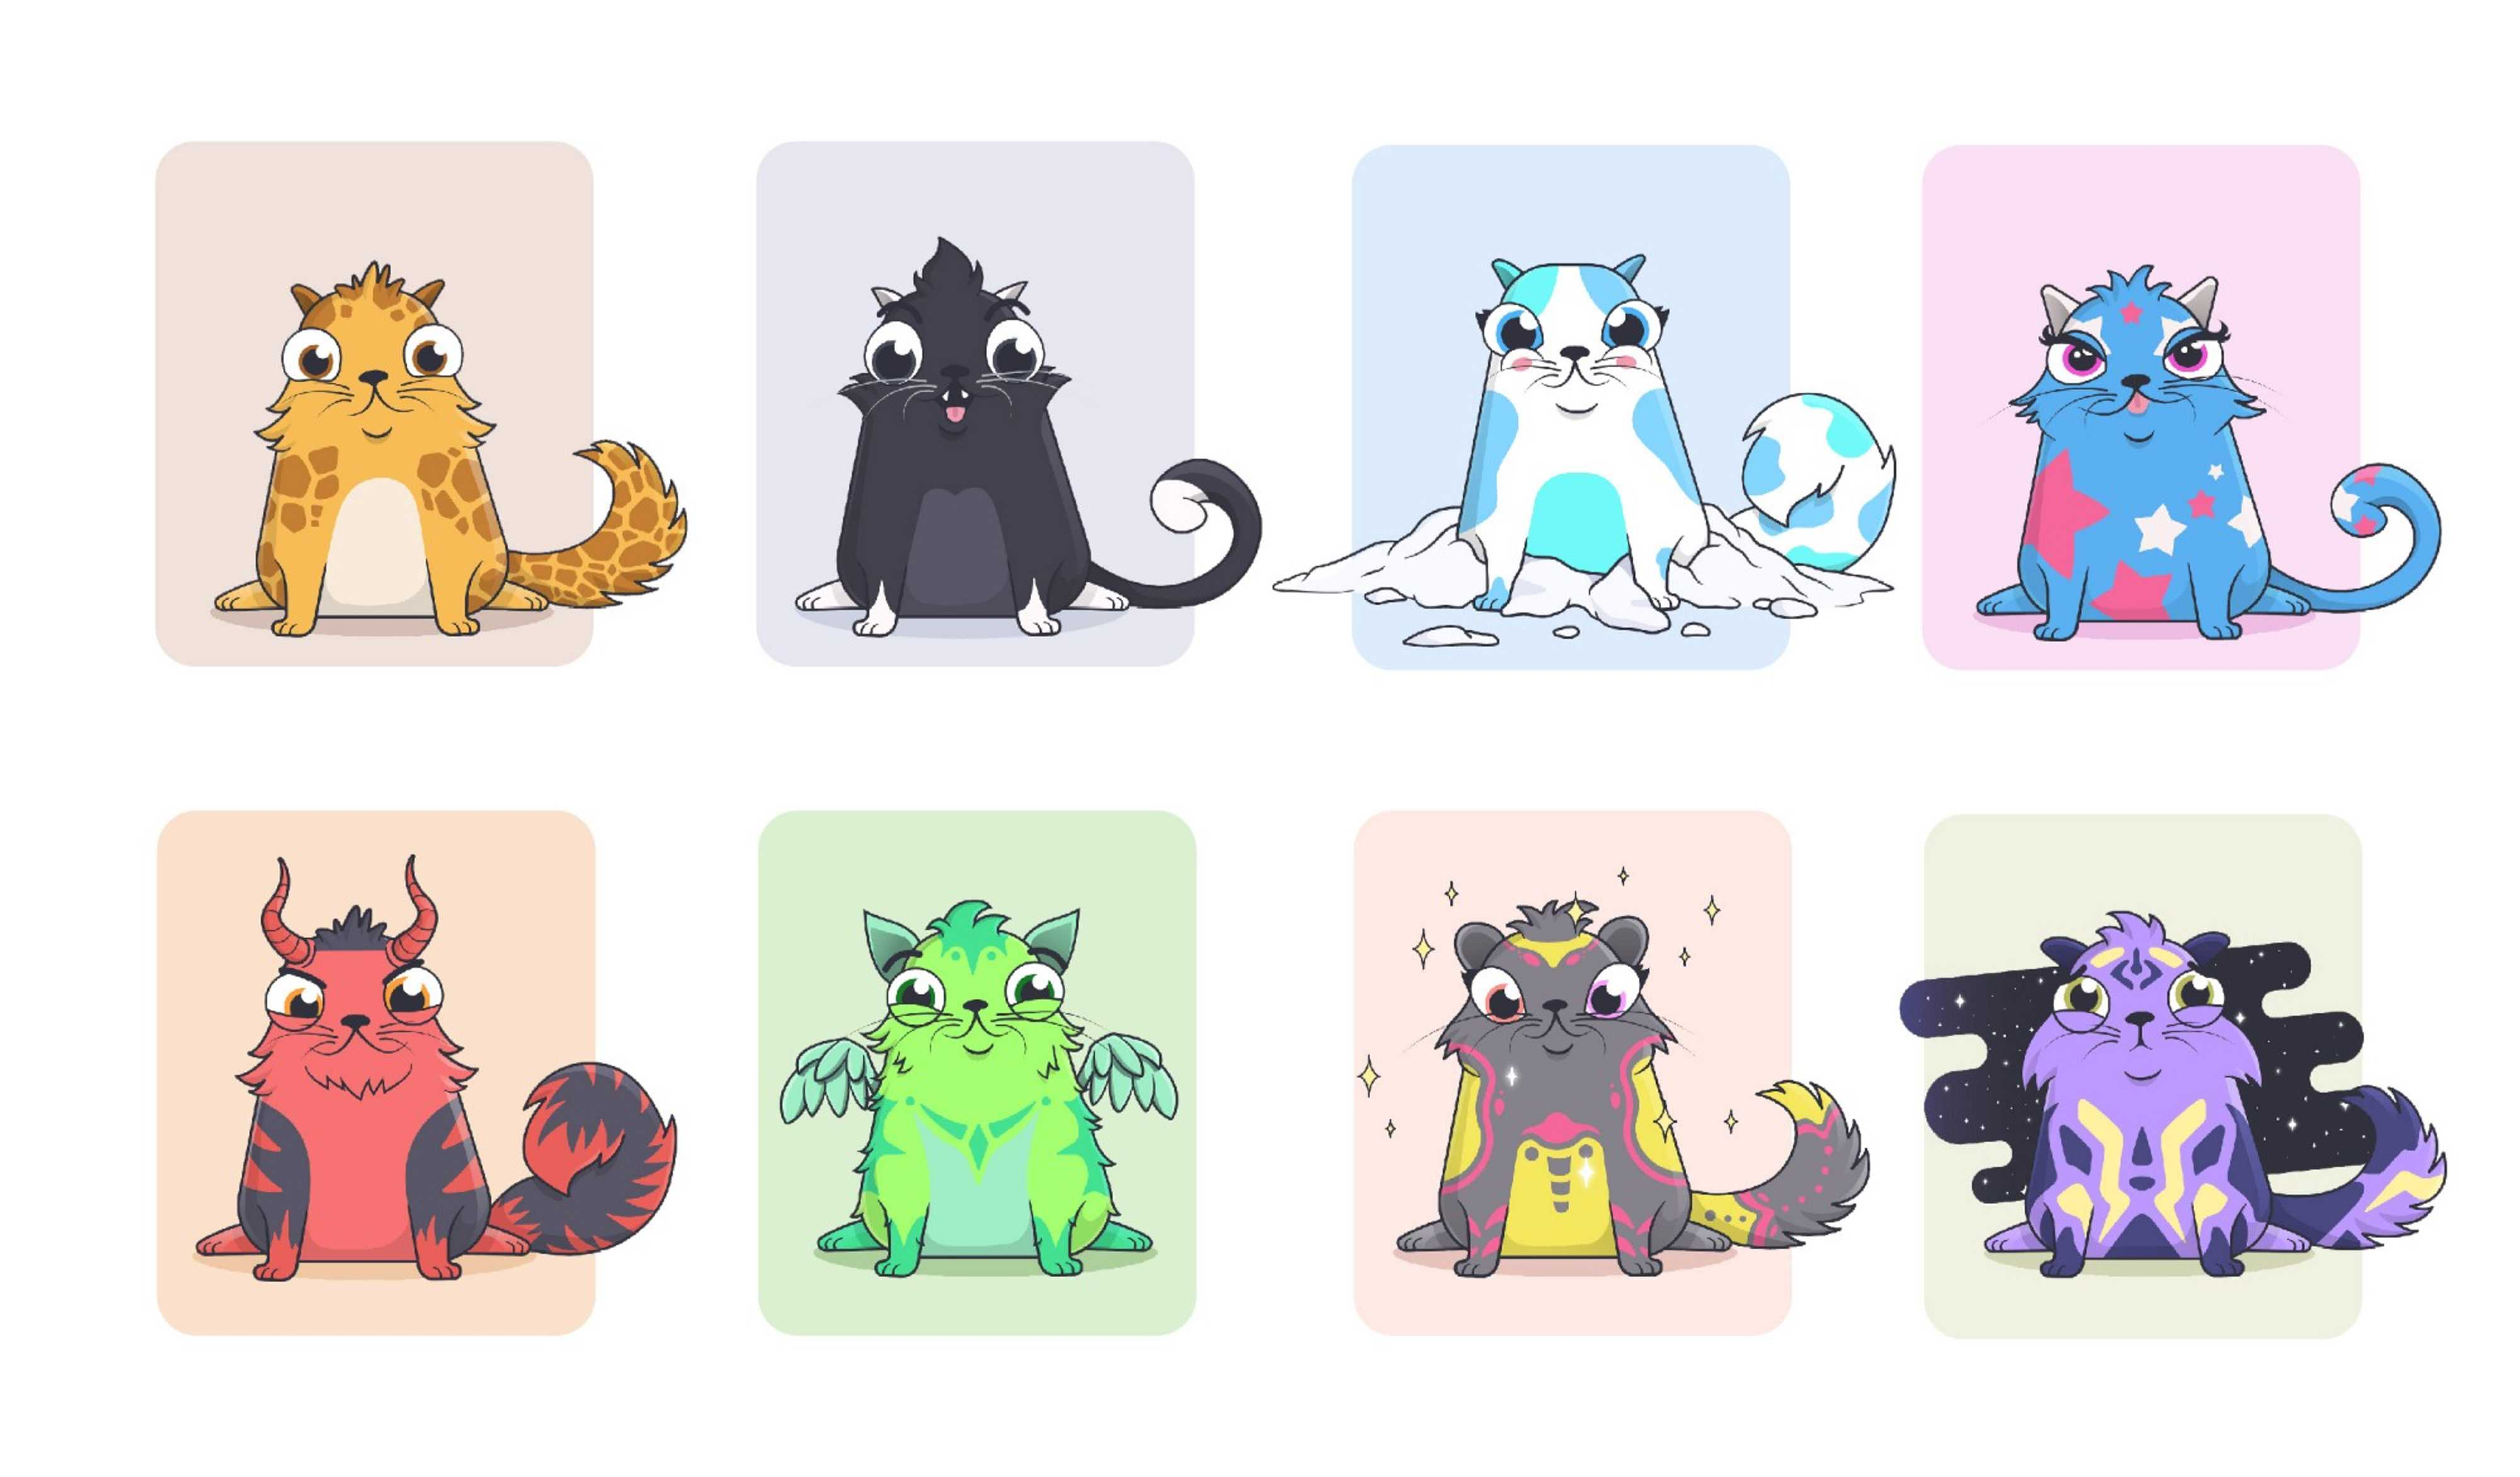 Will you be the first to breed these imaginary CryptoKitties? - CryptoKitties Blog